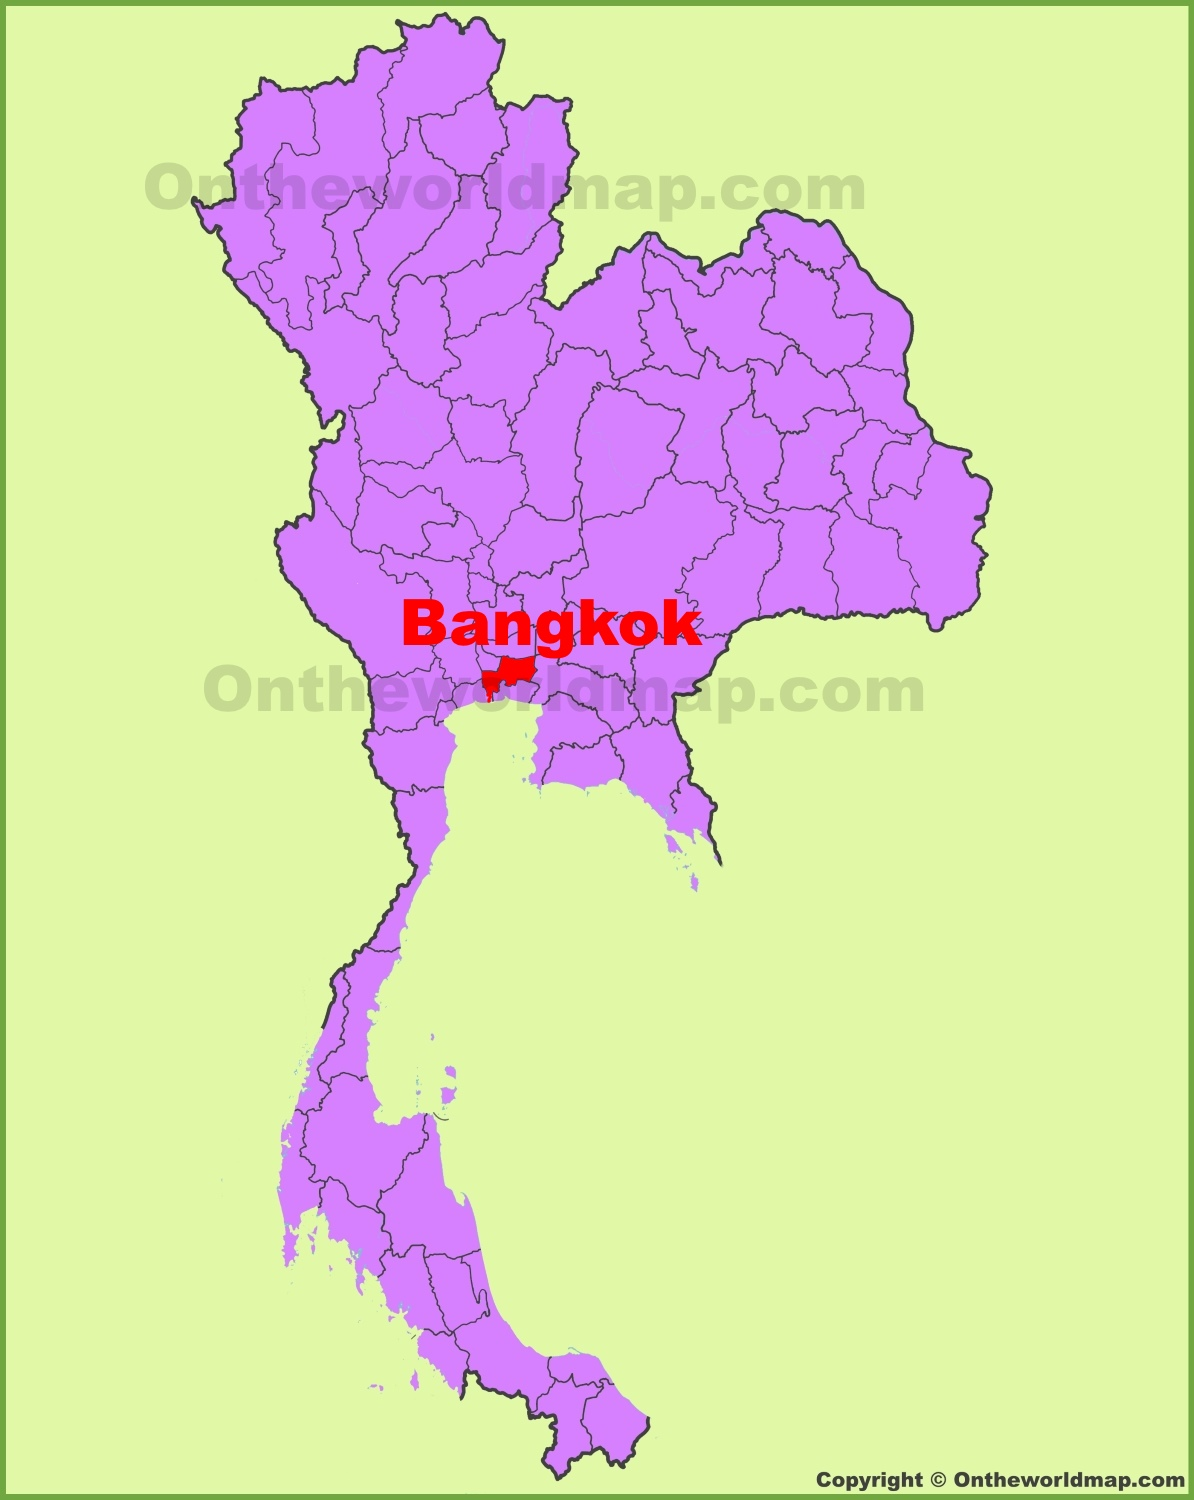 Bangkok location on the Thailand Map